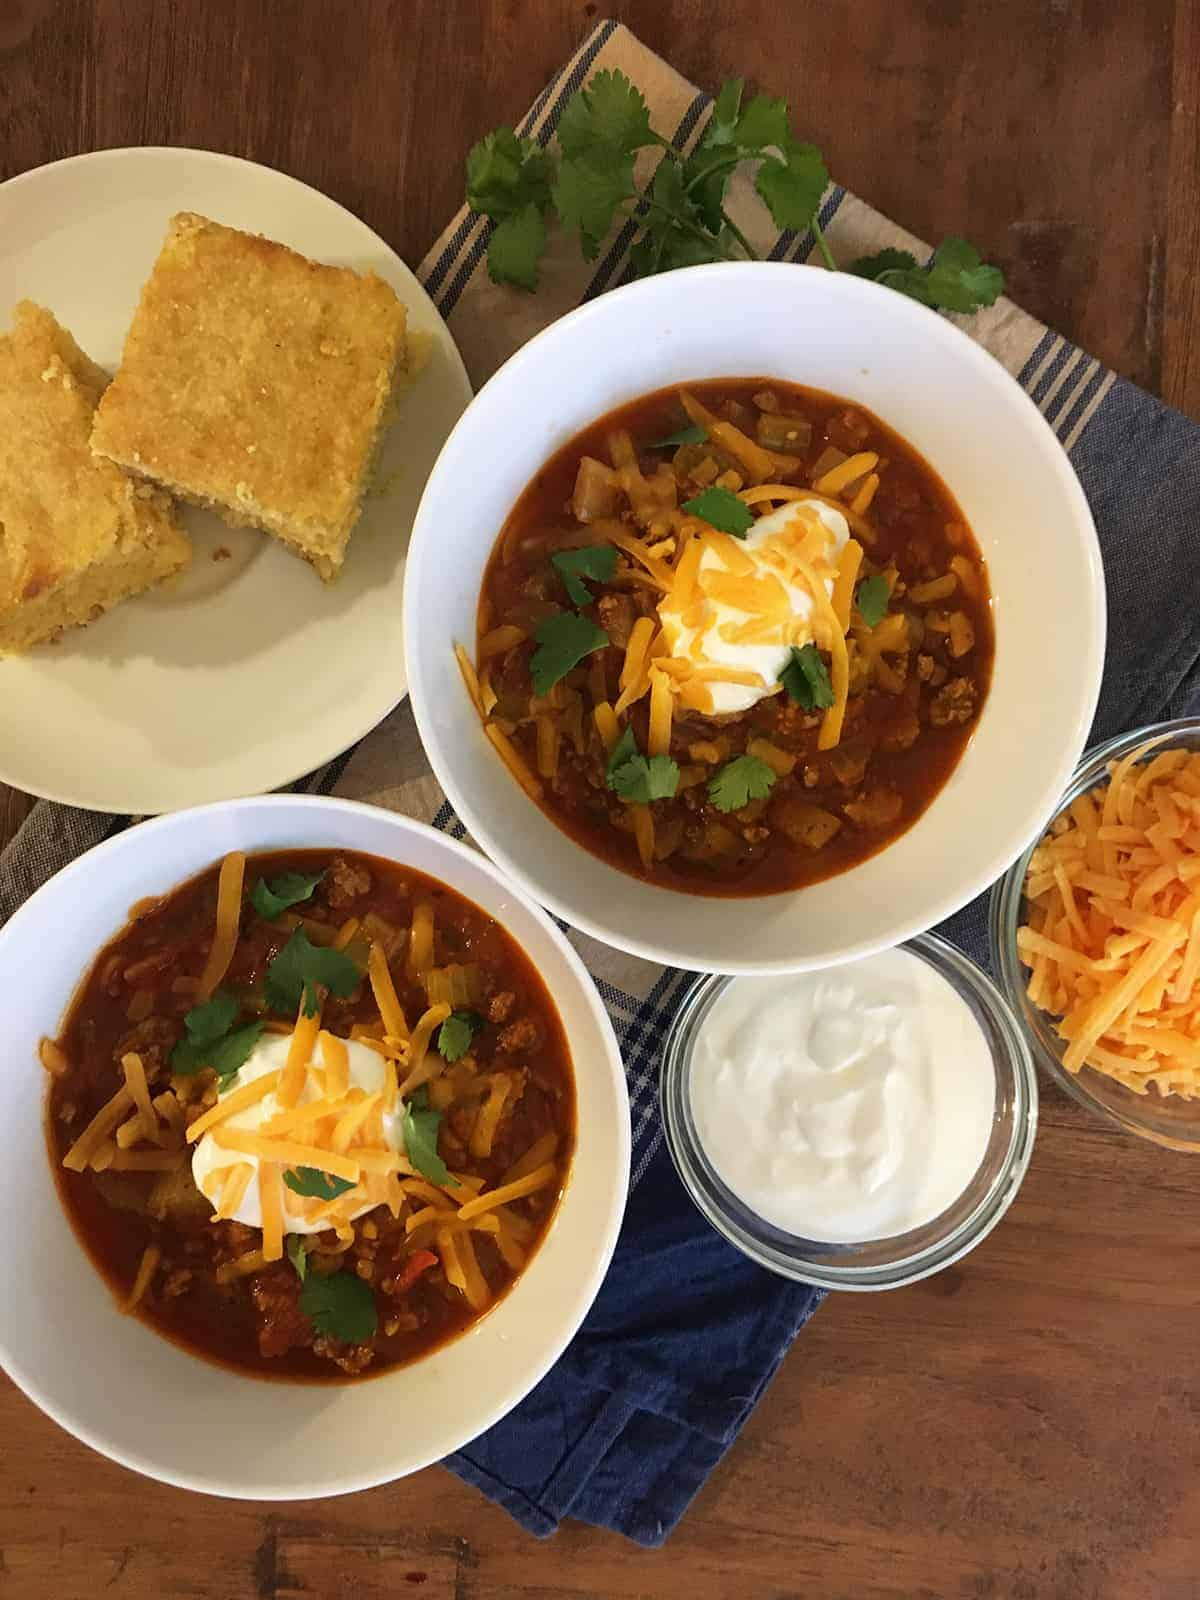 Quick and easy chili with a dollop of sour cream and shredded cheese in two white serving bowls